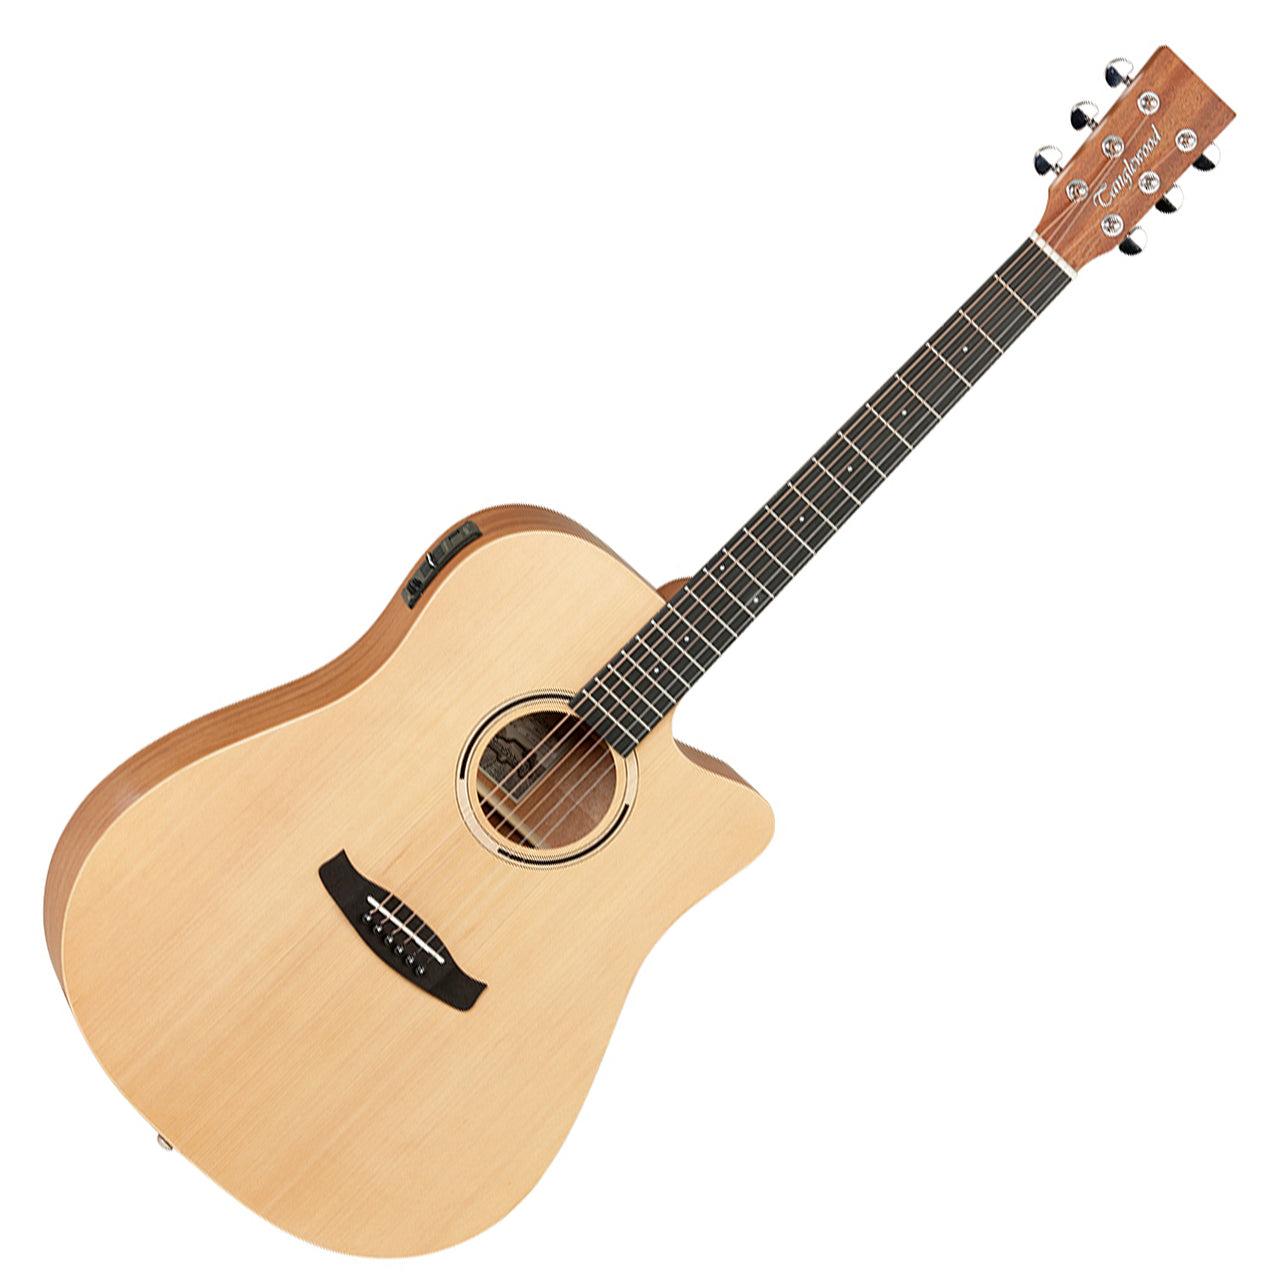 Tanglewood TWR2-DCE Roadster II Dreadnought Cutaway Acoustic Guitar - Cedar Top